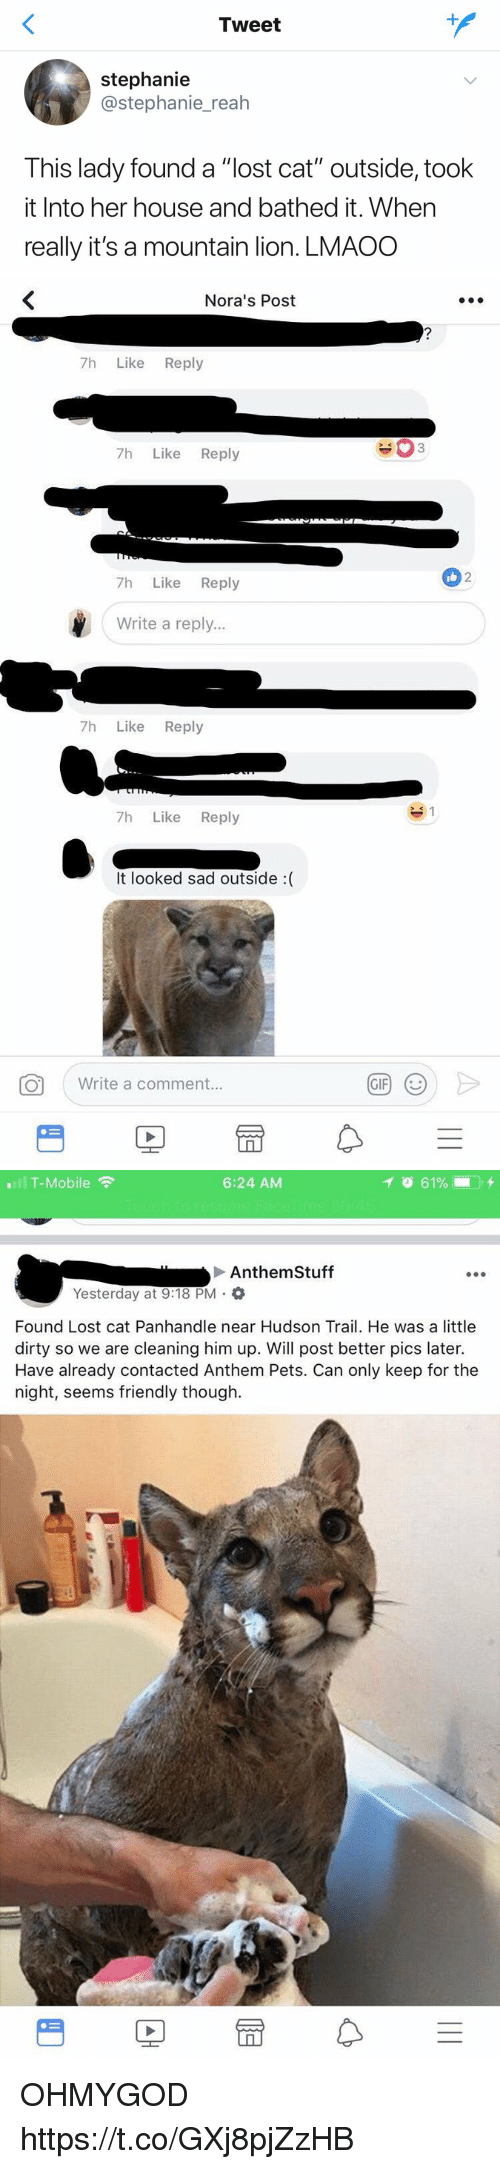 "Lost Cat: Tweet  stephanie  @stephanie_reah  This lady found a ""lost cat"" outside, took  it Into her house and bathed it. When  really it's a mountain lion. LMAOO   Nora's Post  7h Like Reply  7h Like Reply  2  7h Like Reply  Write a reply...  7h Like Reply  7h Like Reply  It looked sad outside :(  。  ( Write a comment.  GIF)  (じ   T-Mobile  6:24 AM  Anthem Stuff  Yesterday at 9:18 PM .  Found Lost cat Panhandle near Hudson Trail. He was a little  dirty so we are cleaning him up. Will post better pics later.  Have already contacted Anthem Pets. Can only keep for the  night, seems friendly though.  rt OHMYGOD https://t.co/GXj8pjZzHB"